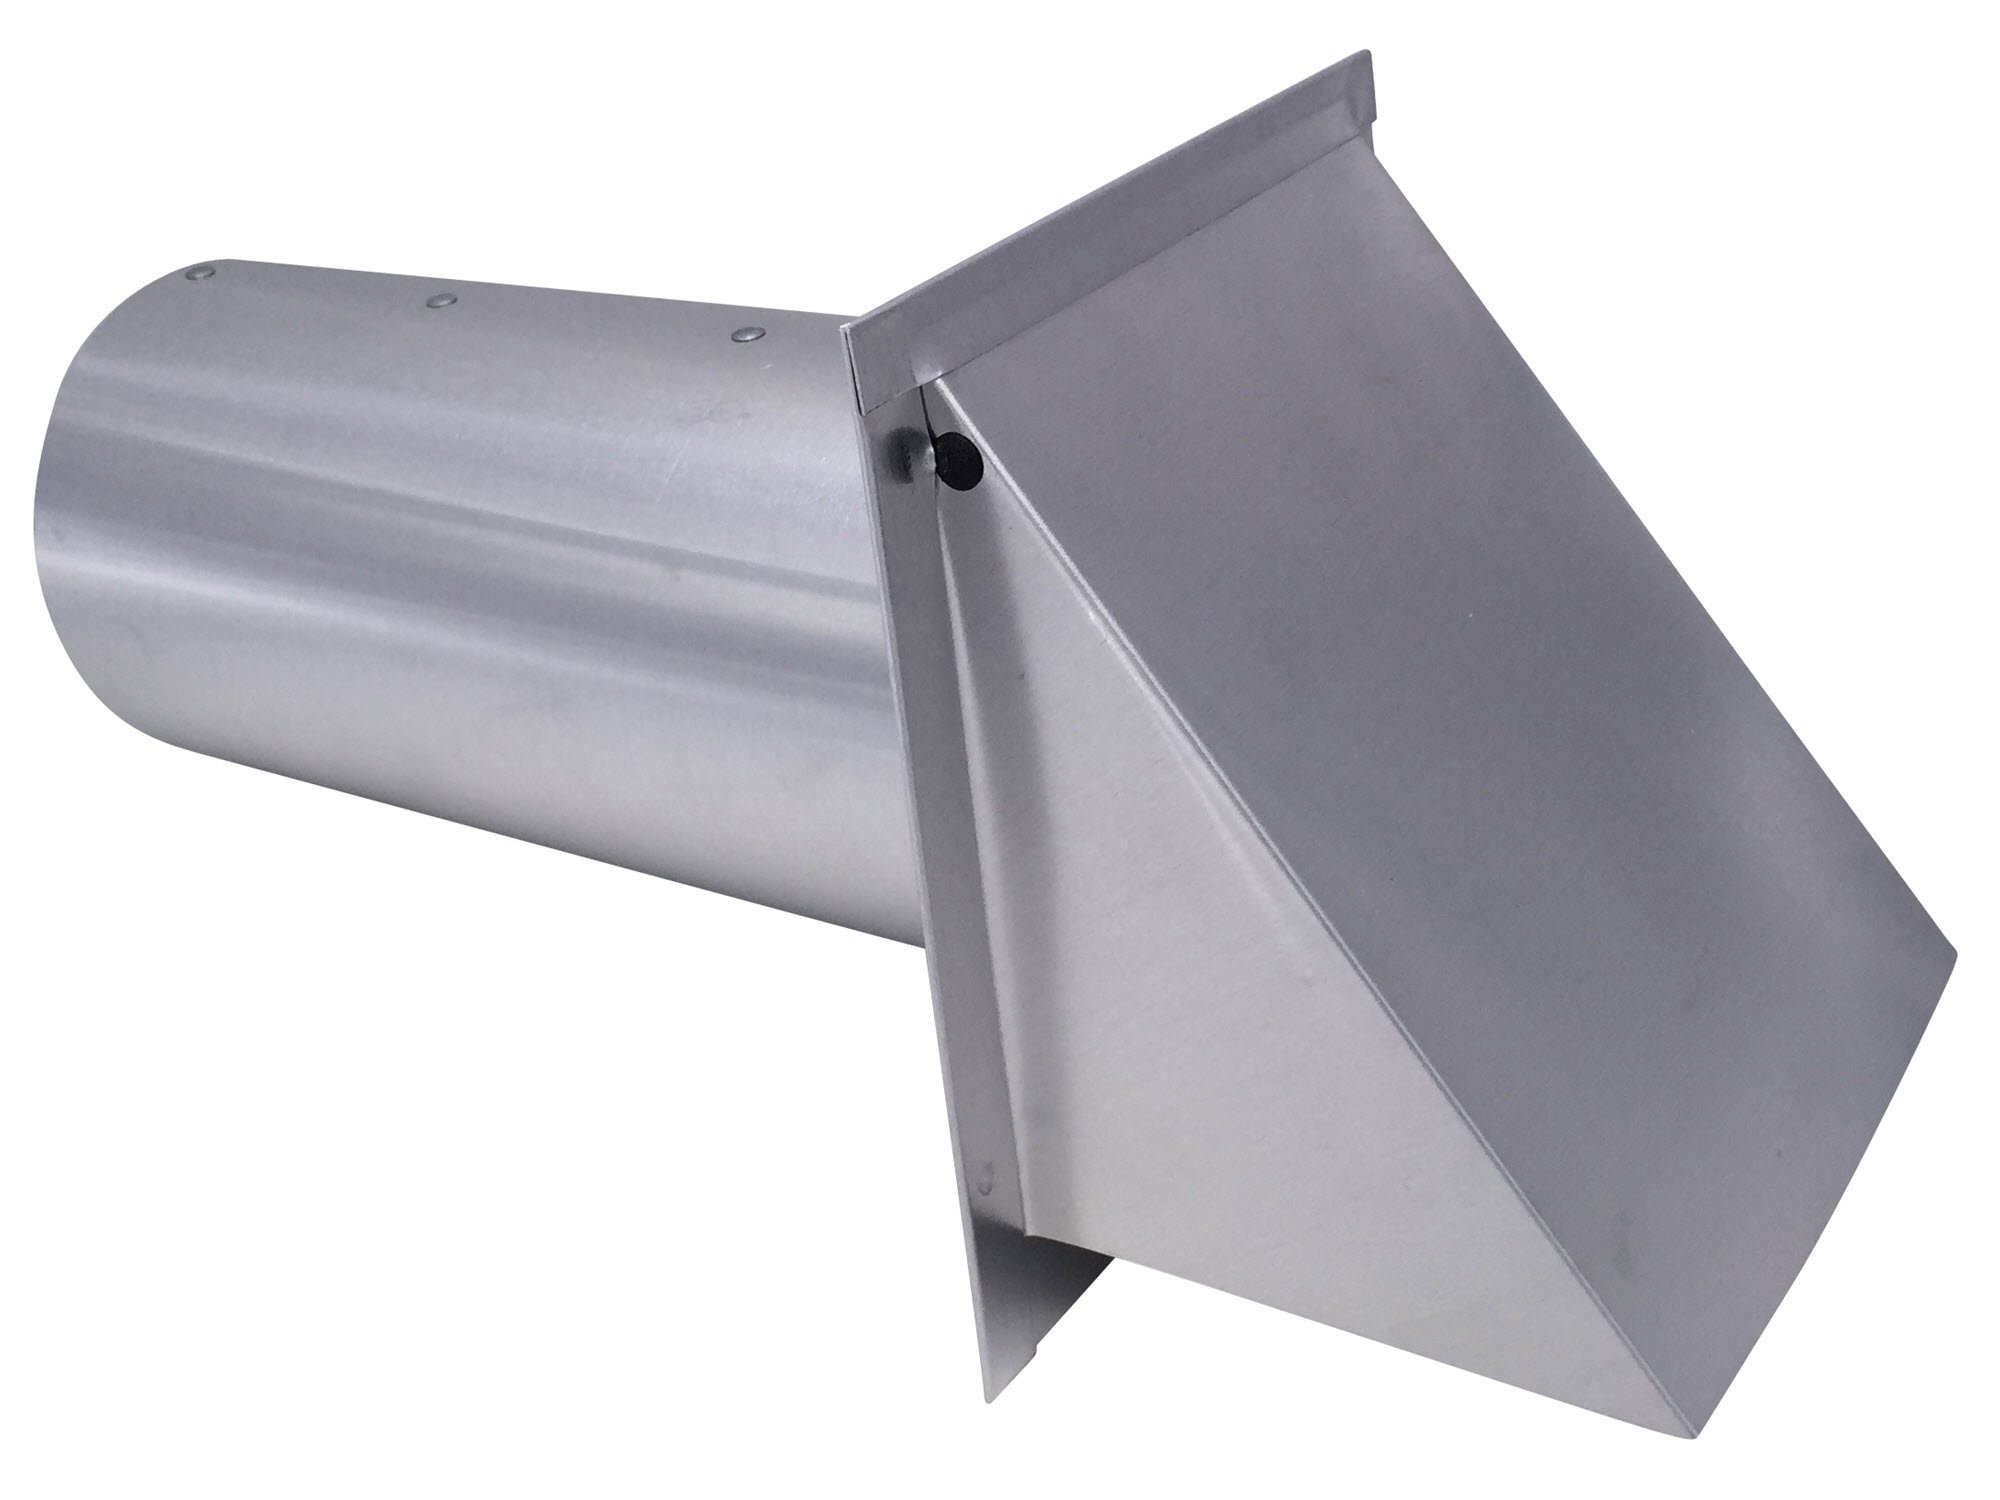 5 Inch Wall Vent Aluminum Screen Only (5 Inch Diameter) - Vent Works